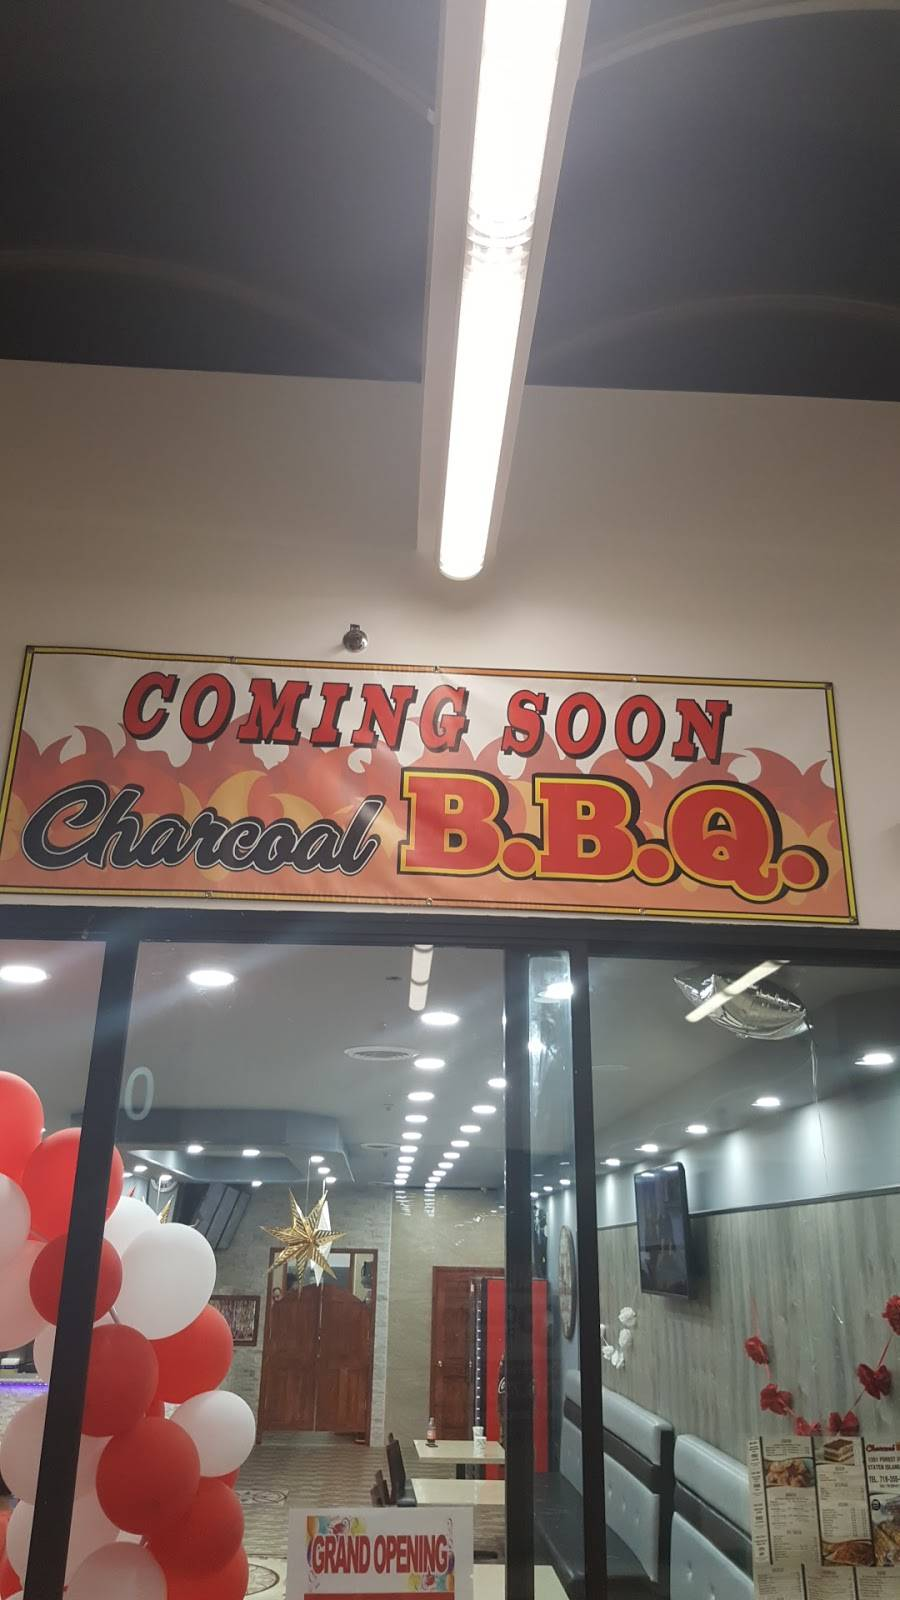 charcoal bbq | restaurant | 1351 Forest Ave, Staten Island, NY 10302, USA | 7183559060 OR +1 718-355-9060